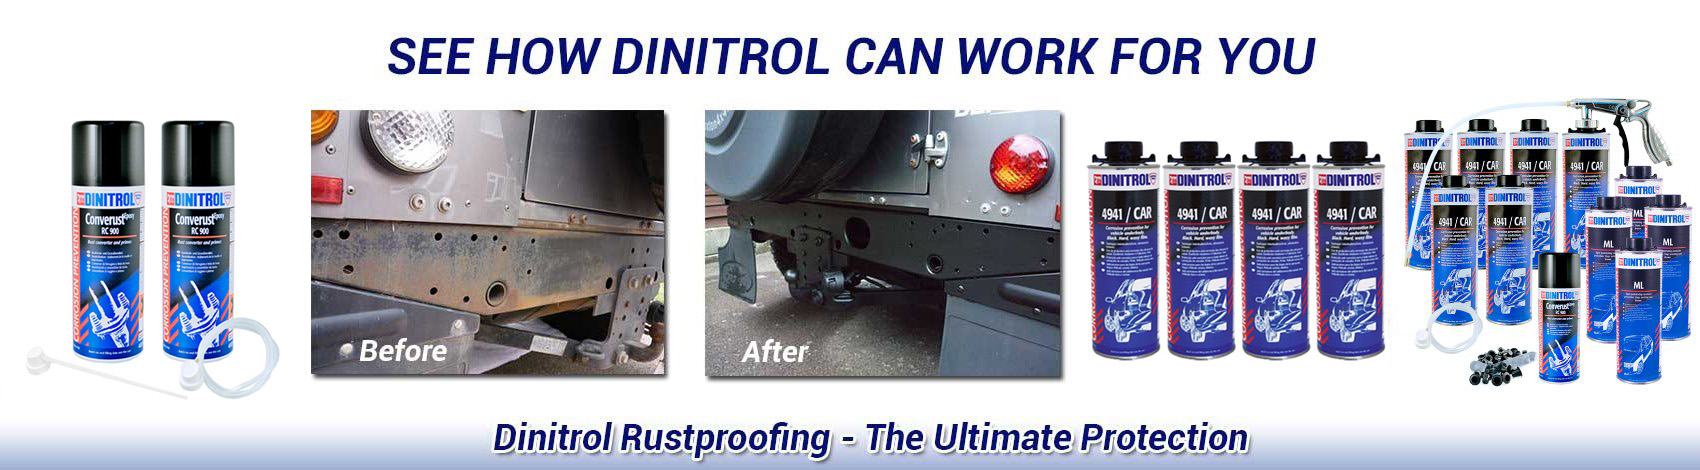 Dinitrol range of rust proofing and rust treatment products as supplied by Rejel